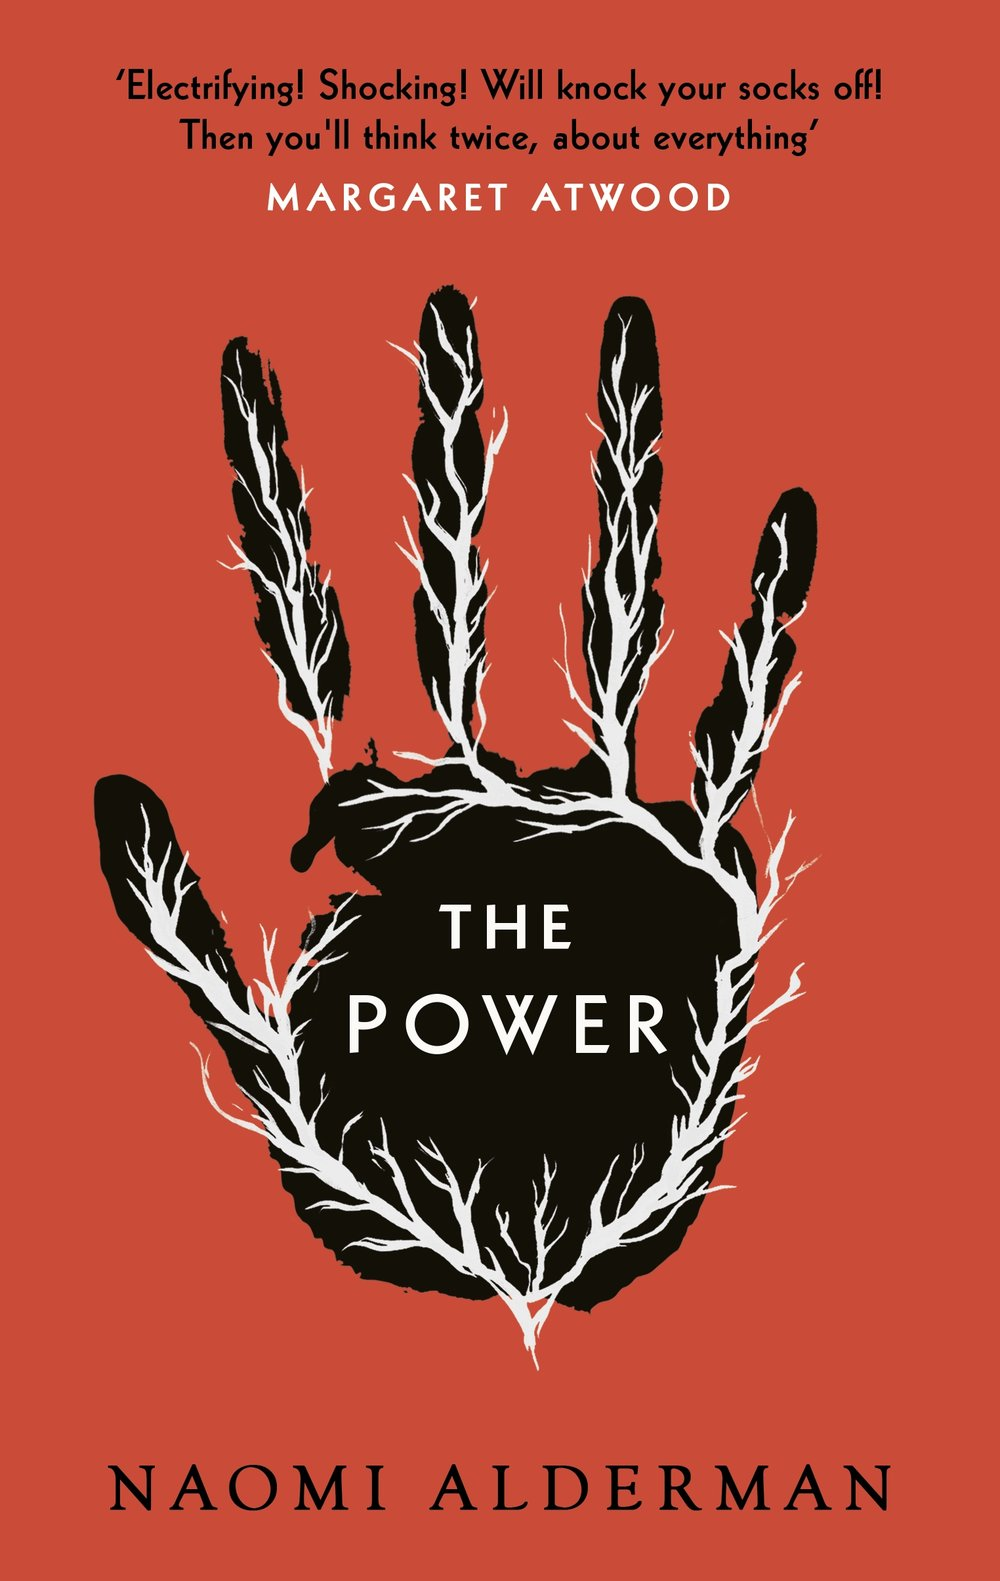 BSG #24: Pop It Back Up / The Power - What if women all across the world were suddenly given the power of electricity? The Book Squad entertains this question and so many more as they dive into Naomi Alderman's speculative alternate history novel The Power. Get ready, because we're going to talk about race, we're going to talk about gender, and we're going to talk about erections. You don't want to miss out on this. Plus, we get into a little Riverdale and Bachelor chat as we discuss what's going on in the blog world, and coming up on our next 'pisode: the launch of #BookSquadGames, starring friend of the pod, Todd! Be sure to rate, review, subscribe, and love us. We love you!